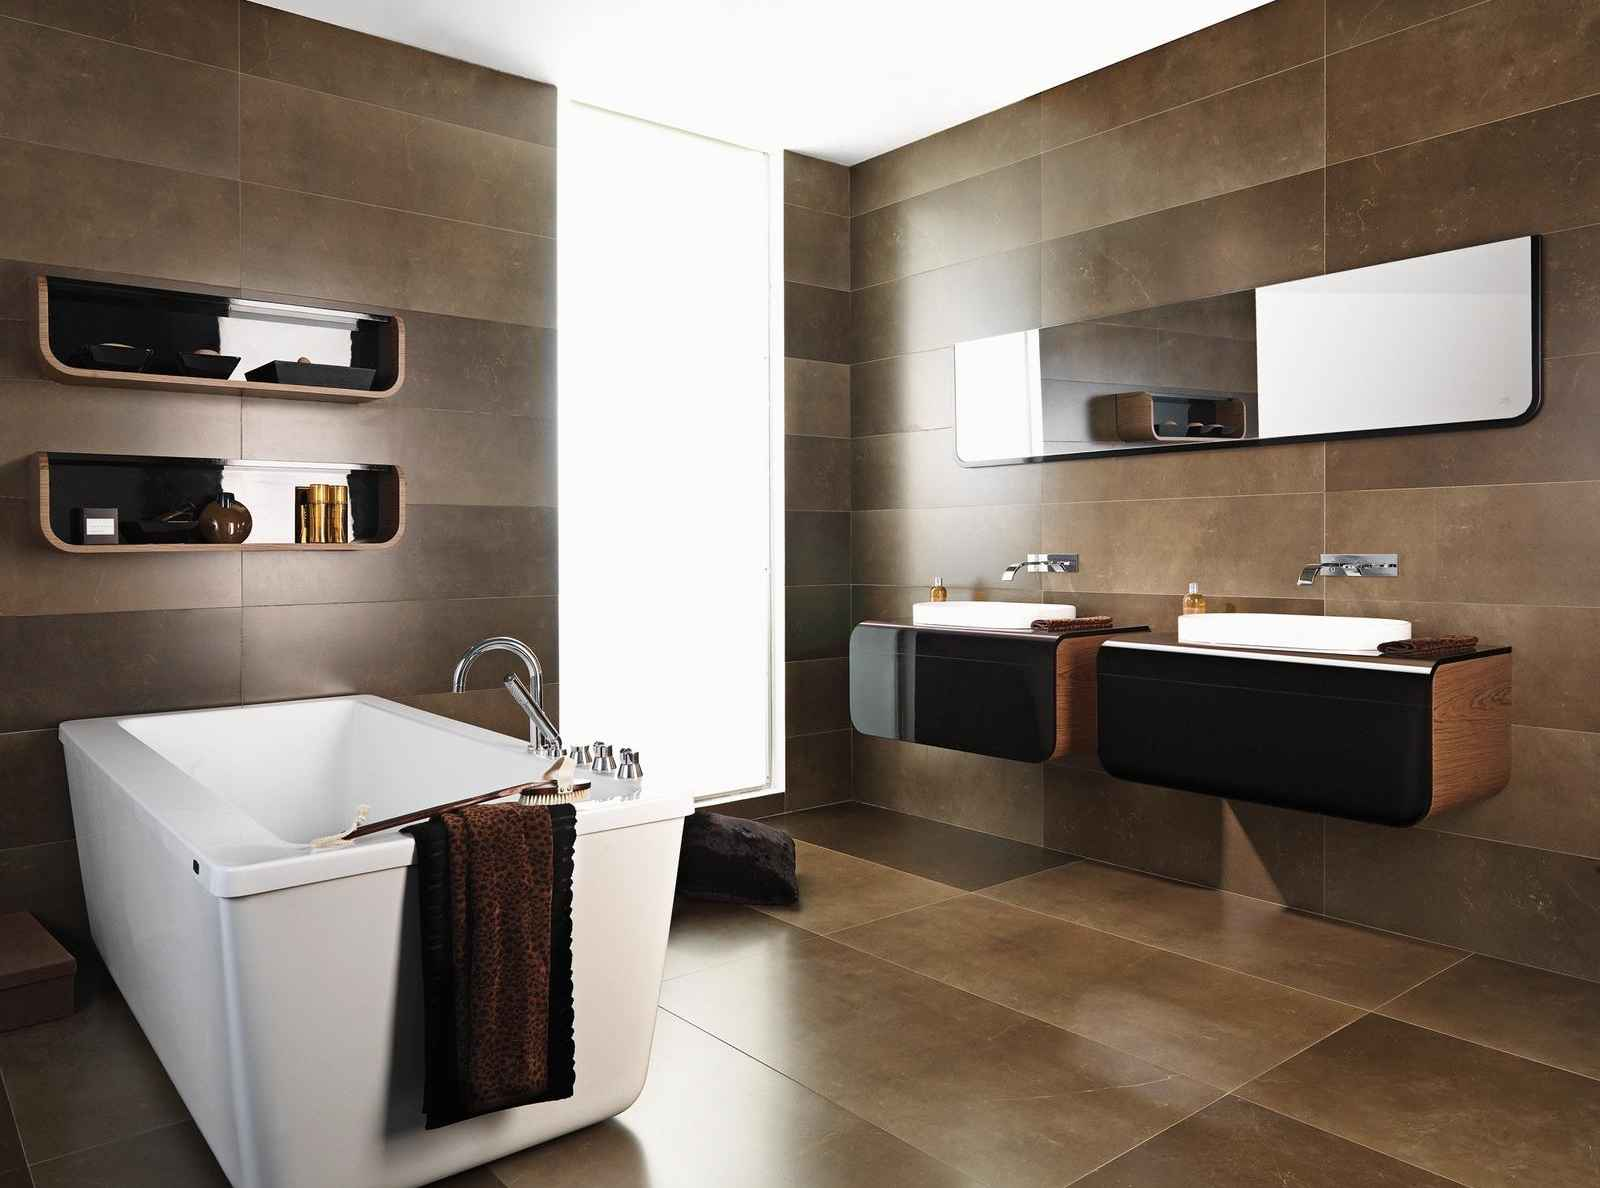 ... Durable Bathroom Ceramic Tile With Natural Stone Accent ...